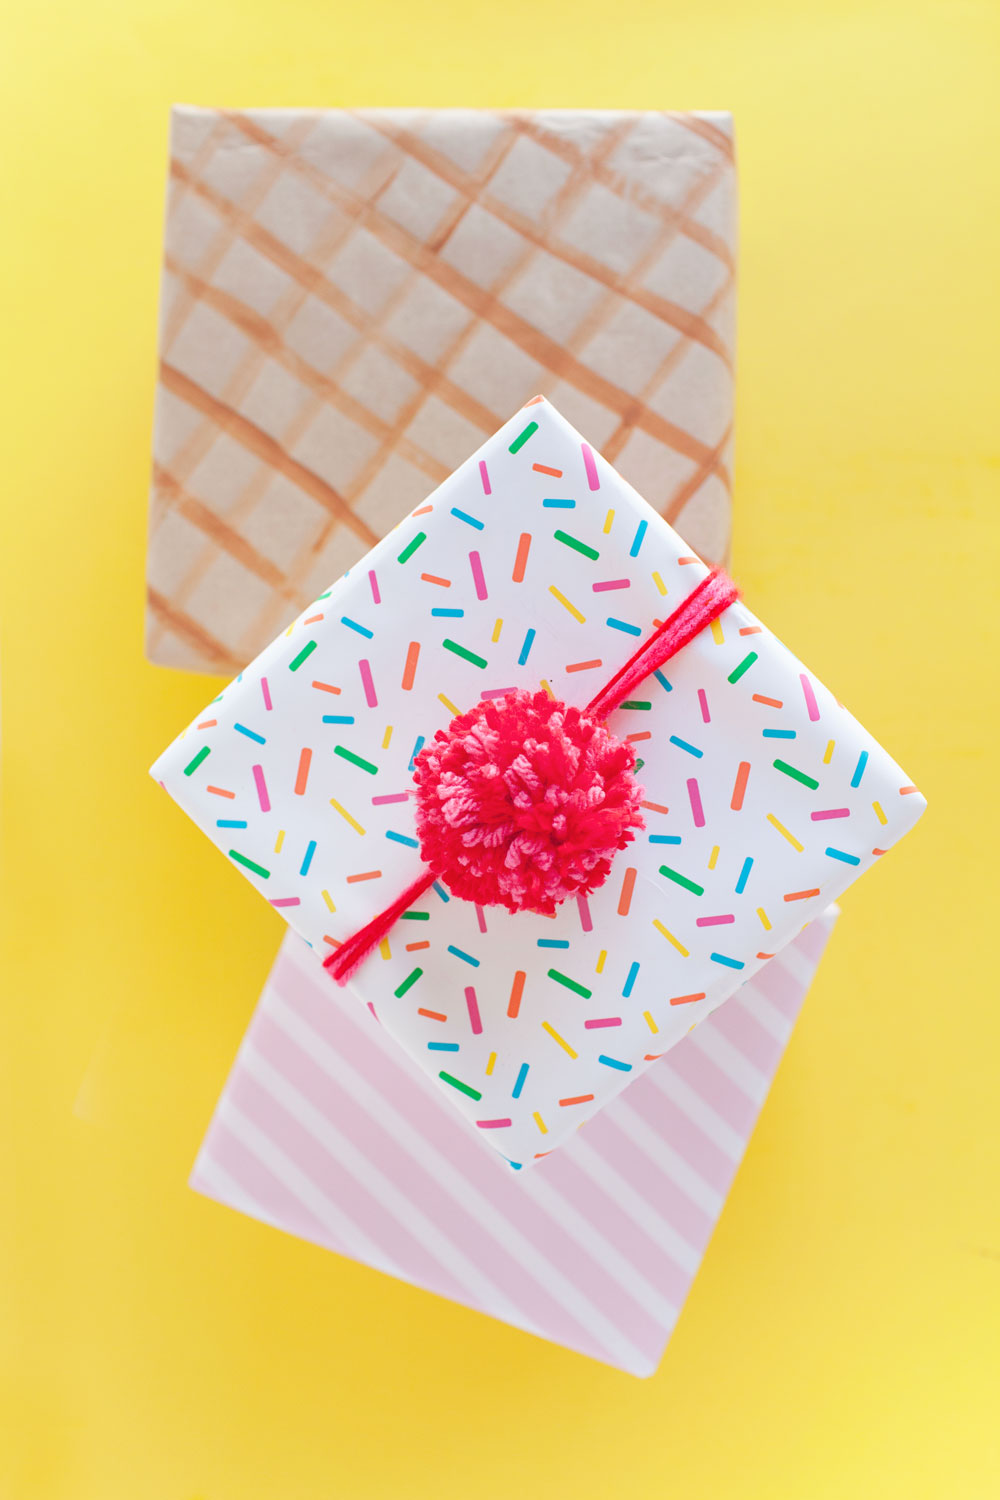 A-fun-way-to-wrap-your-gifts-like-an-ice-cream-cone